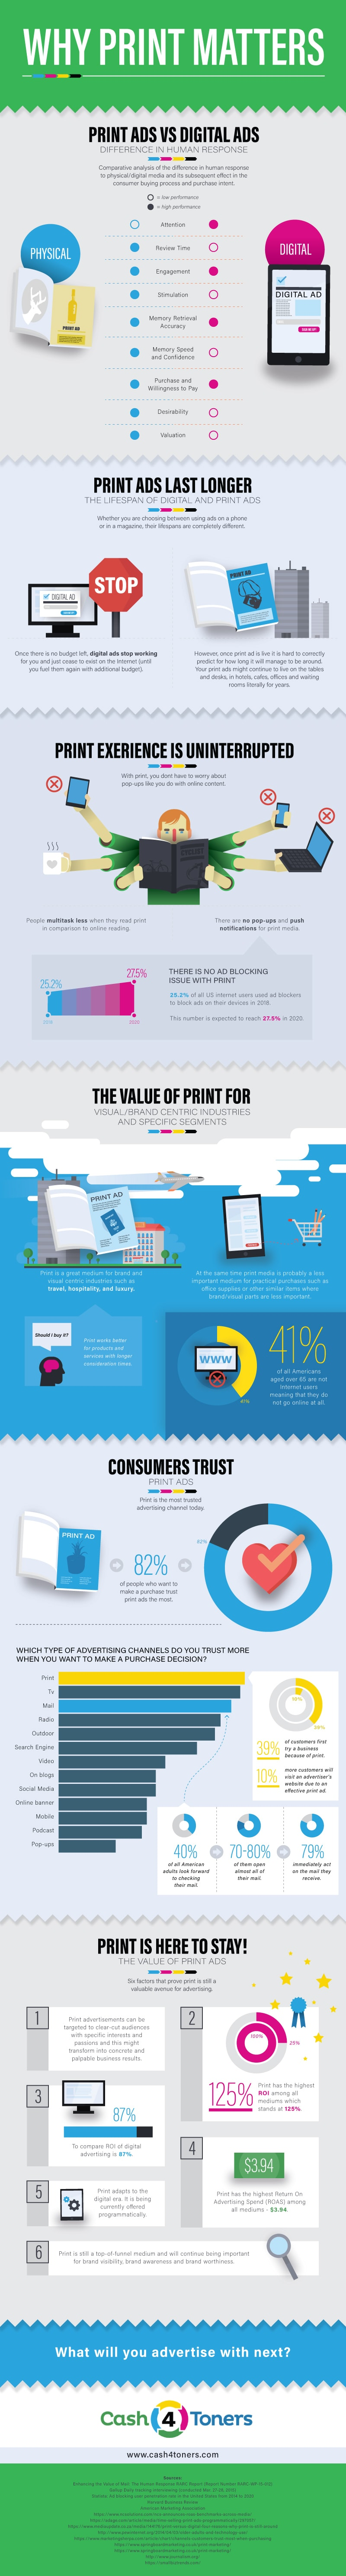 Why Print Matters in 2019 [INFOGRAPHIC] by Cash4Toners